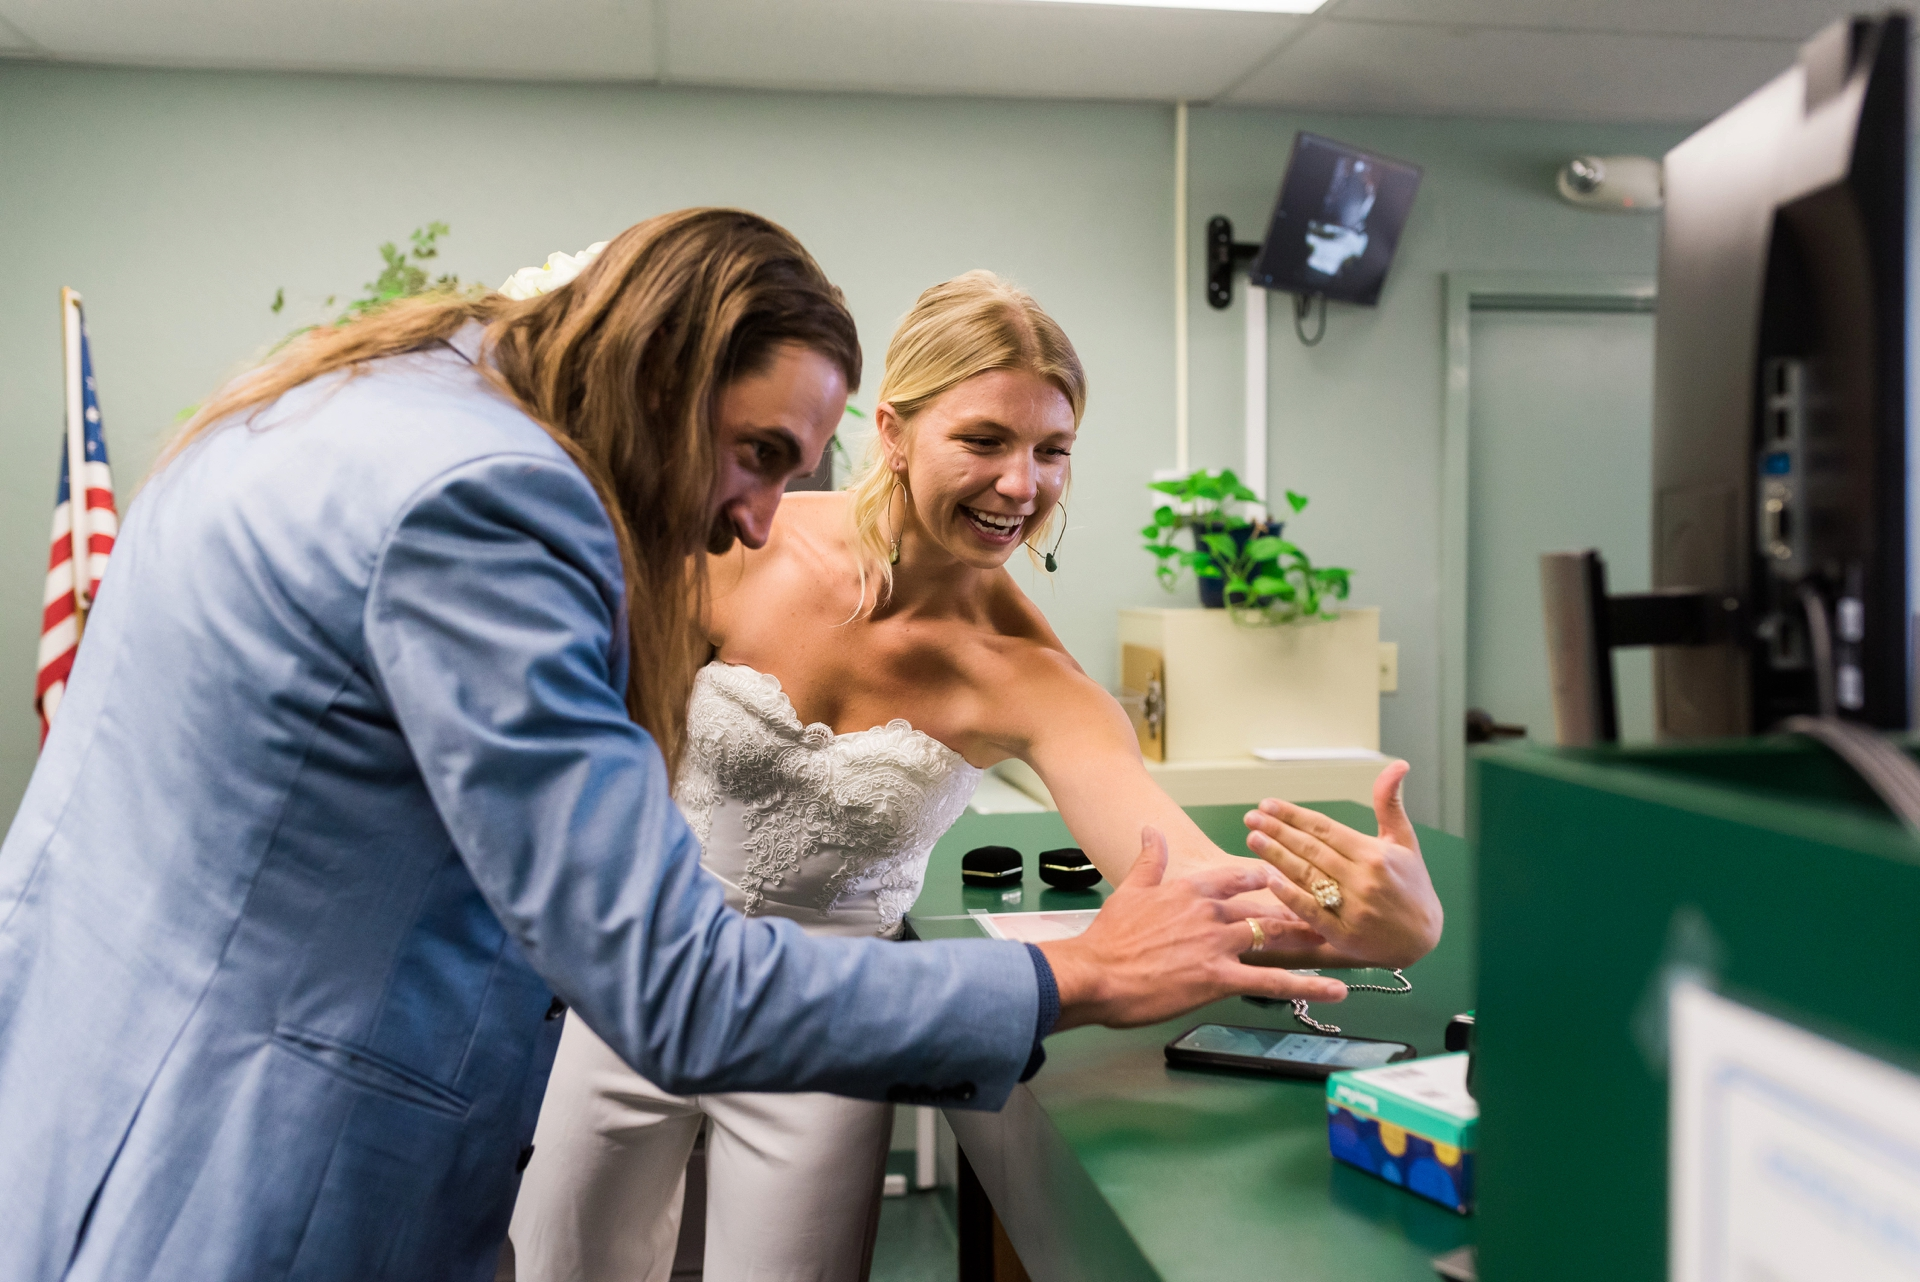 County Clerk Office Zoom Ceremony Photo from CA | The newlyweds show off their wedding rings